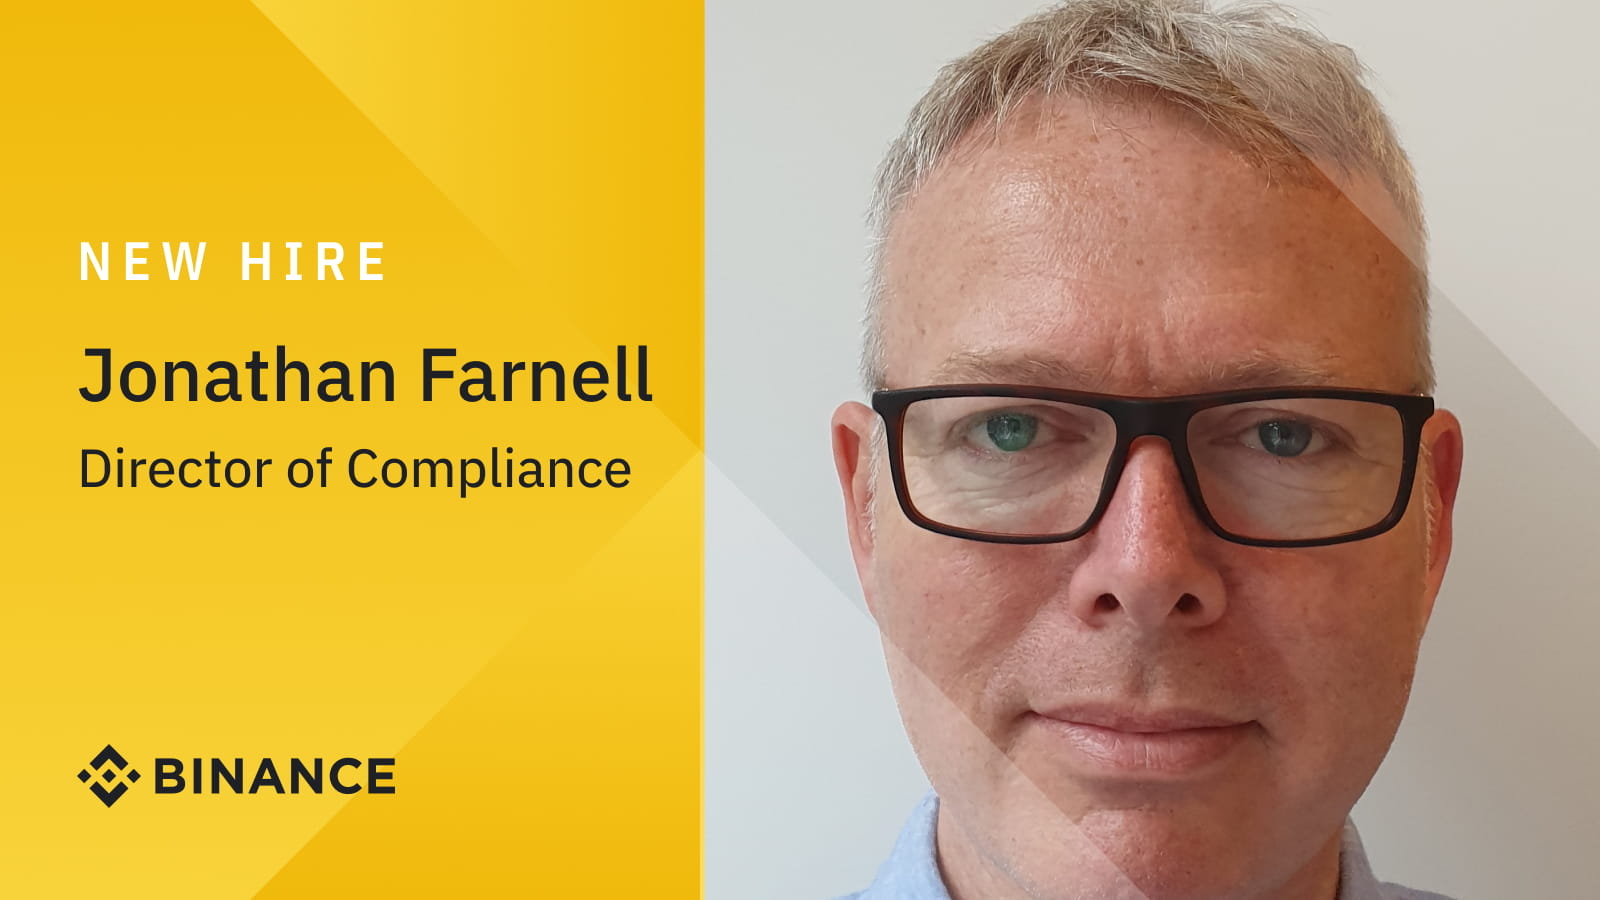 Binance Bolsters European Compliance Team with Hire of Jonathan FarnellCryptocurrency Trading Signals, Strategies & Templates | DexStrats